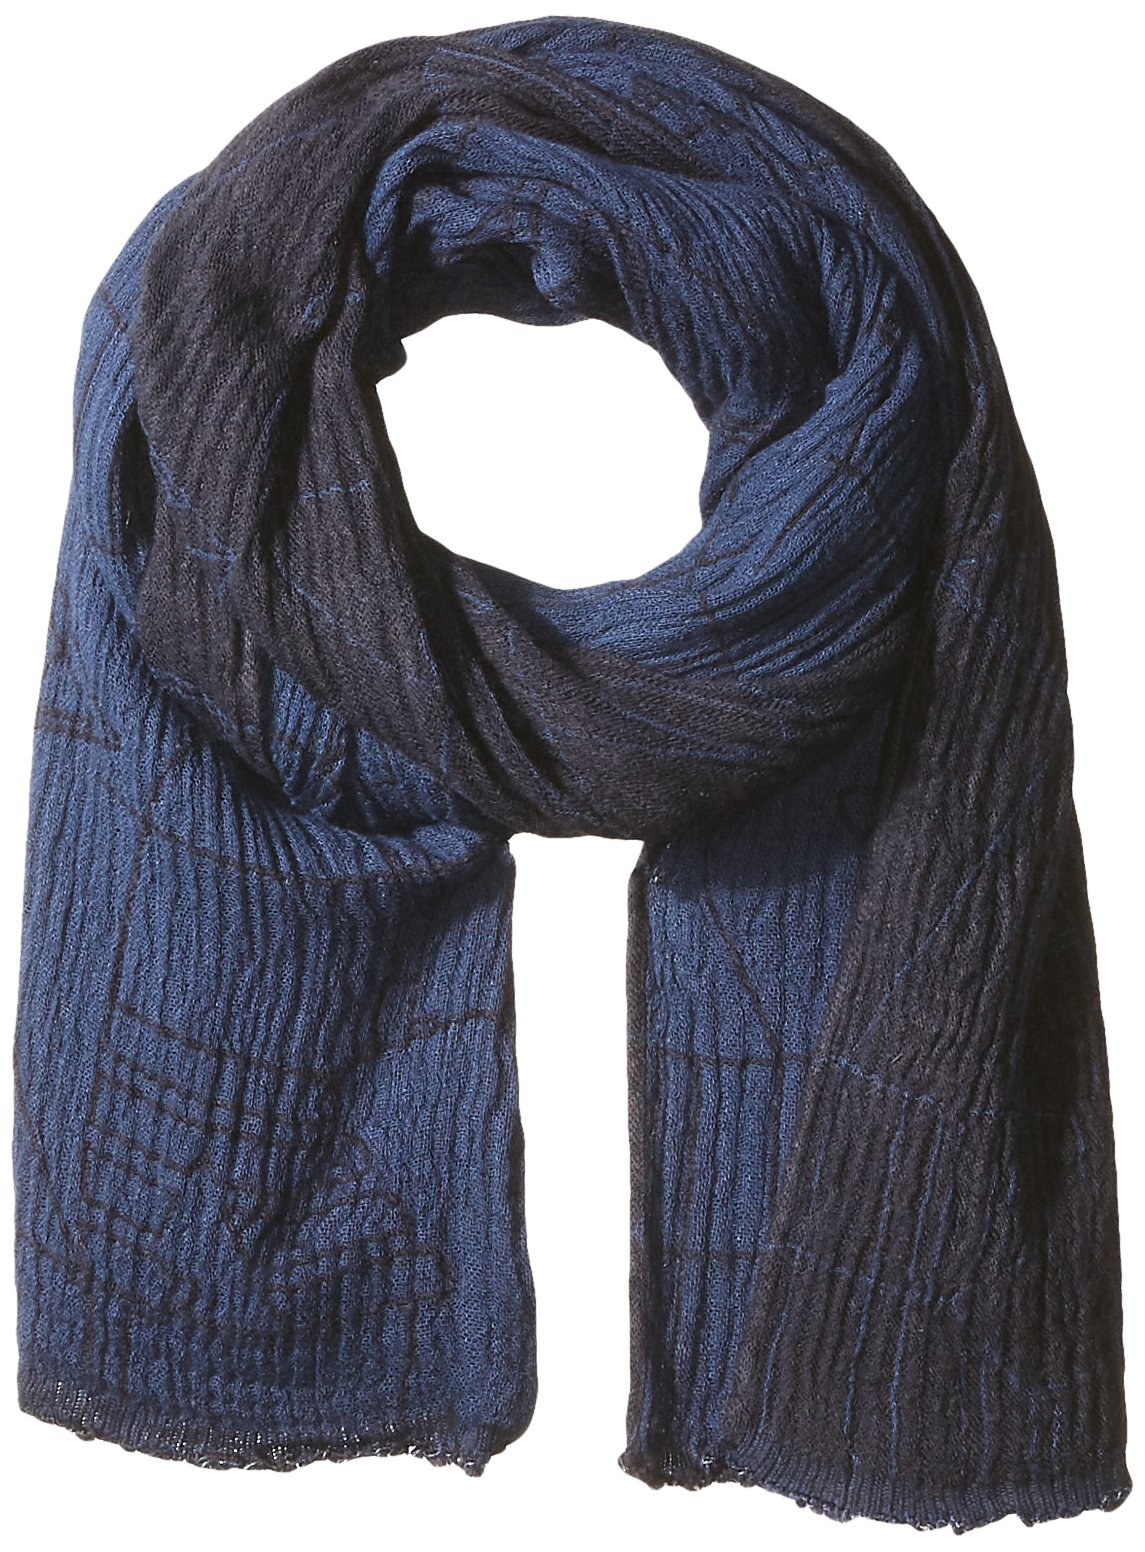 Armani Jeans Men's Viscose AND Cotton Fabric Scarf With Abstract Detail, navy blue, ONE SIZE